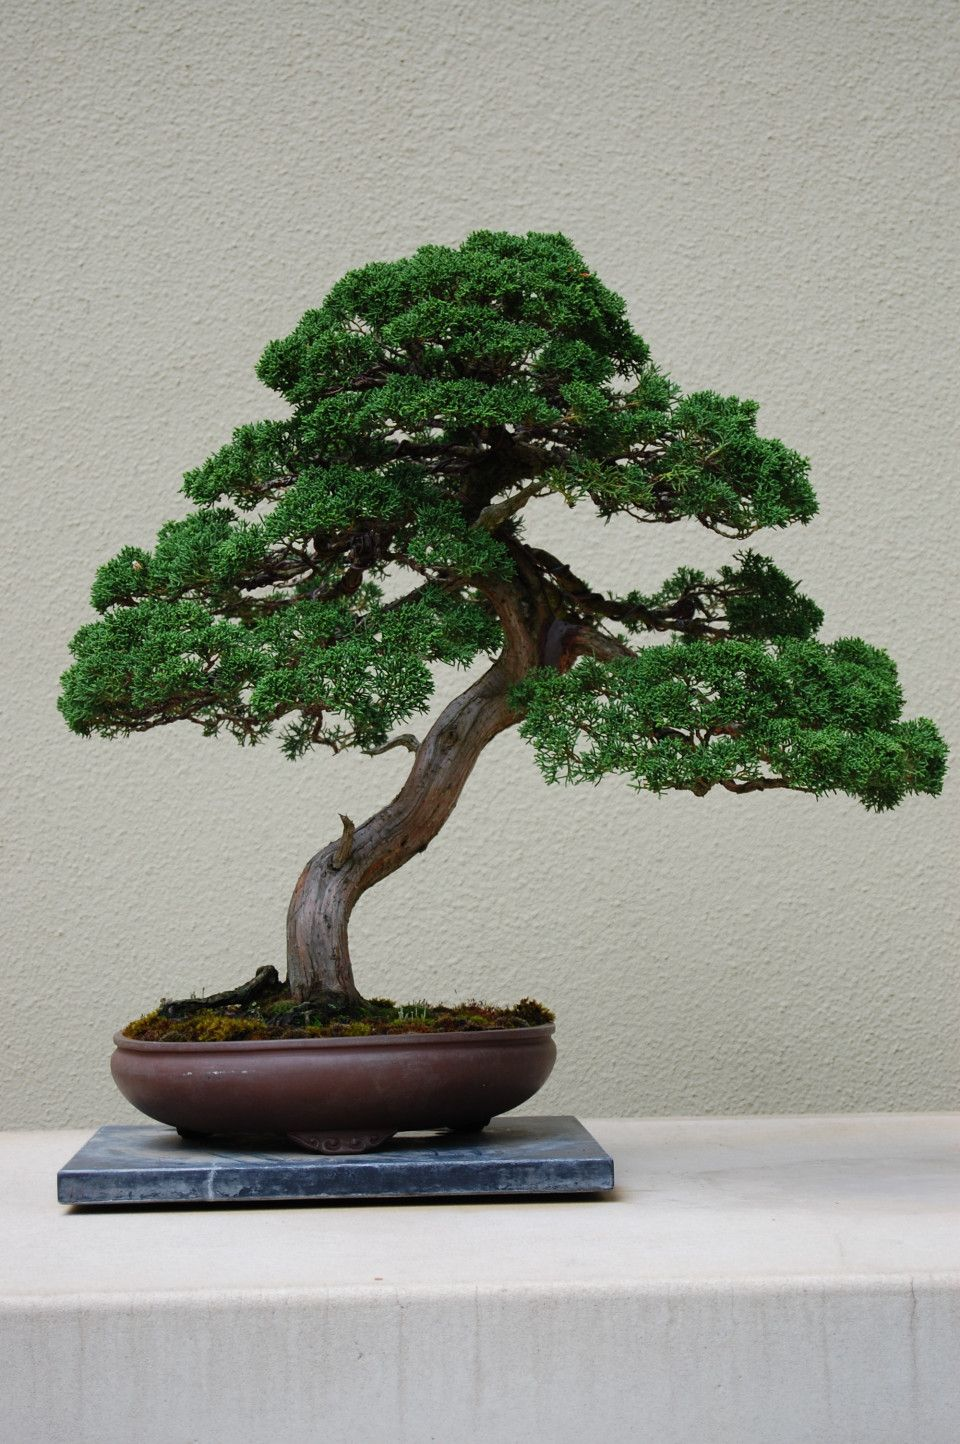 Best In The Northwest At The Pacific Rim Bonsai Collection Bonsai Tree Plants Bonsai Art